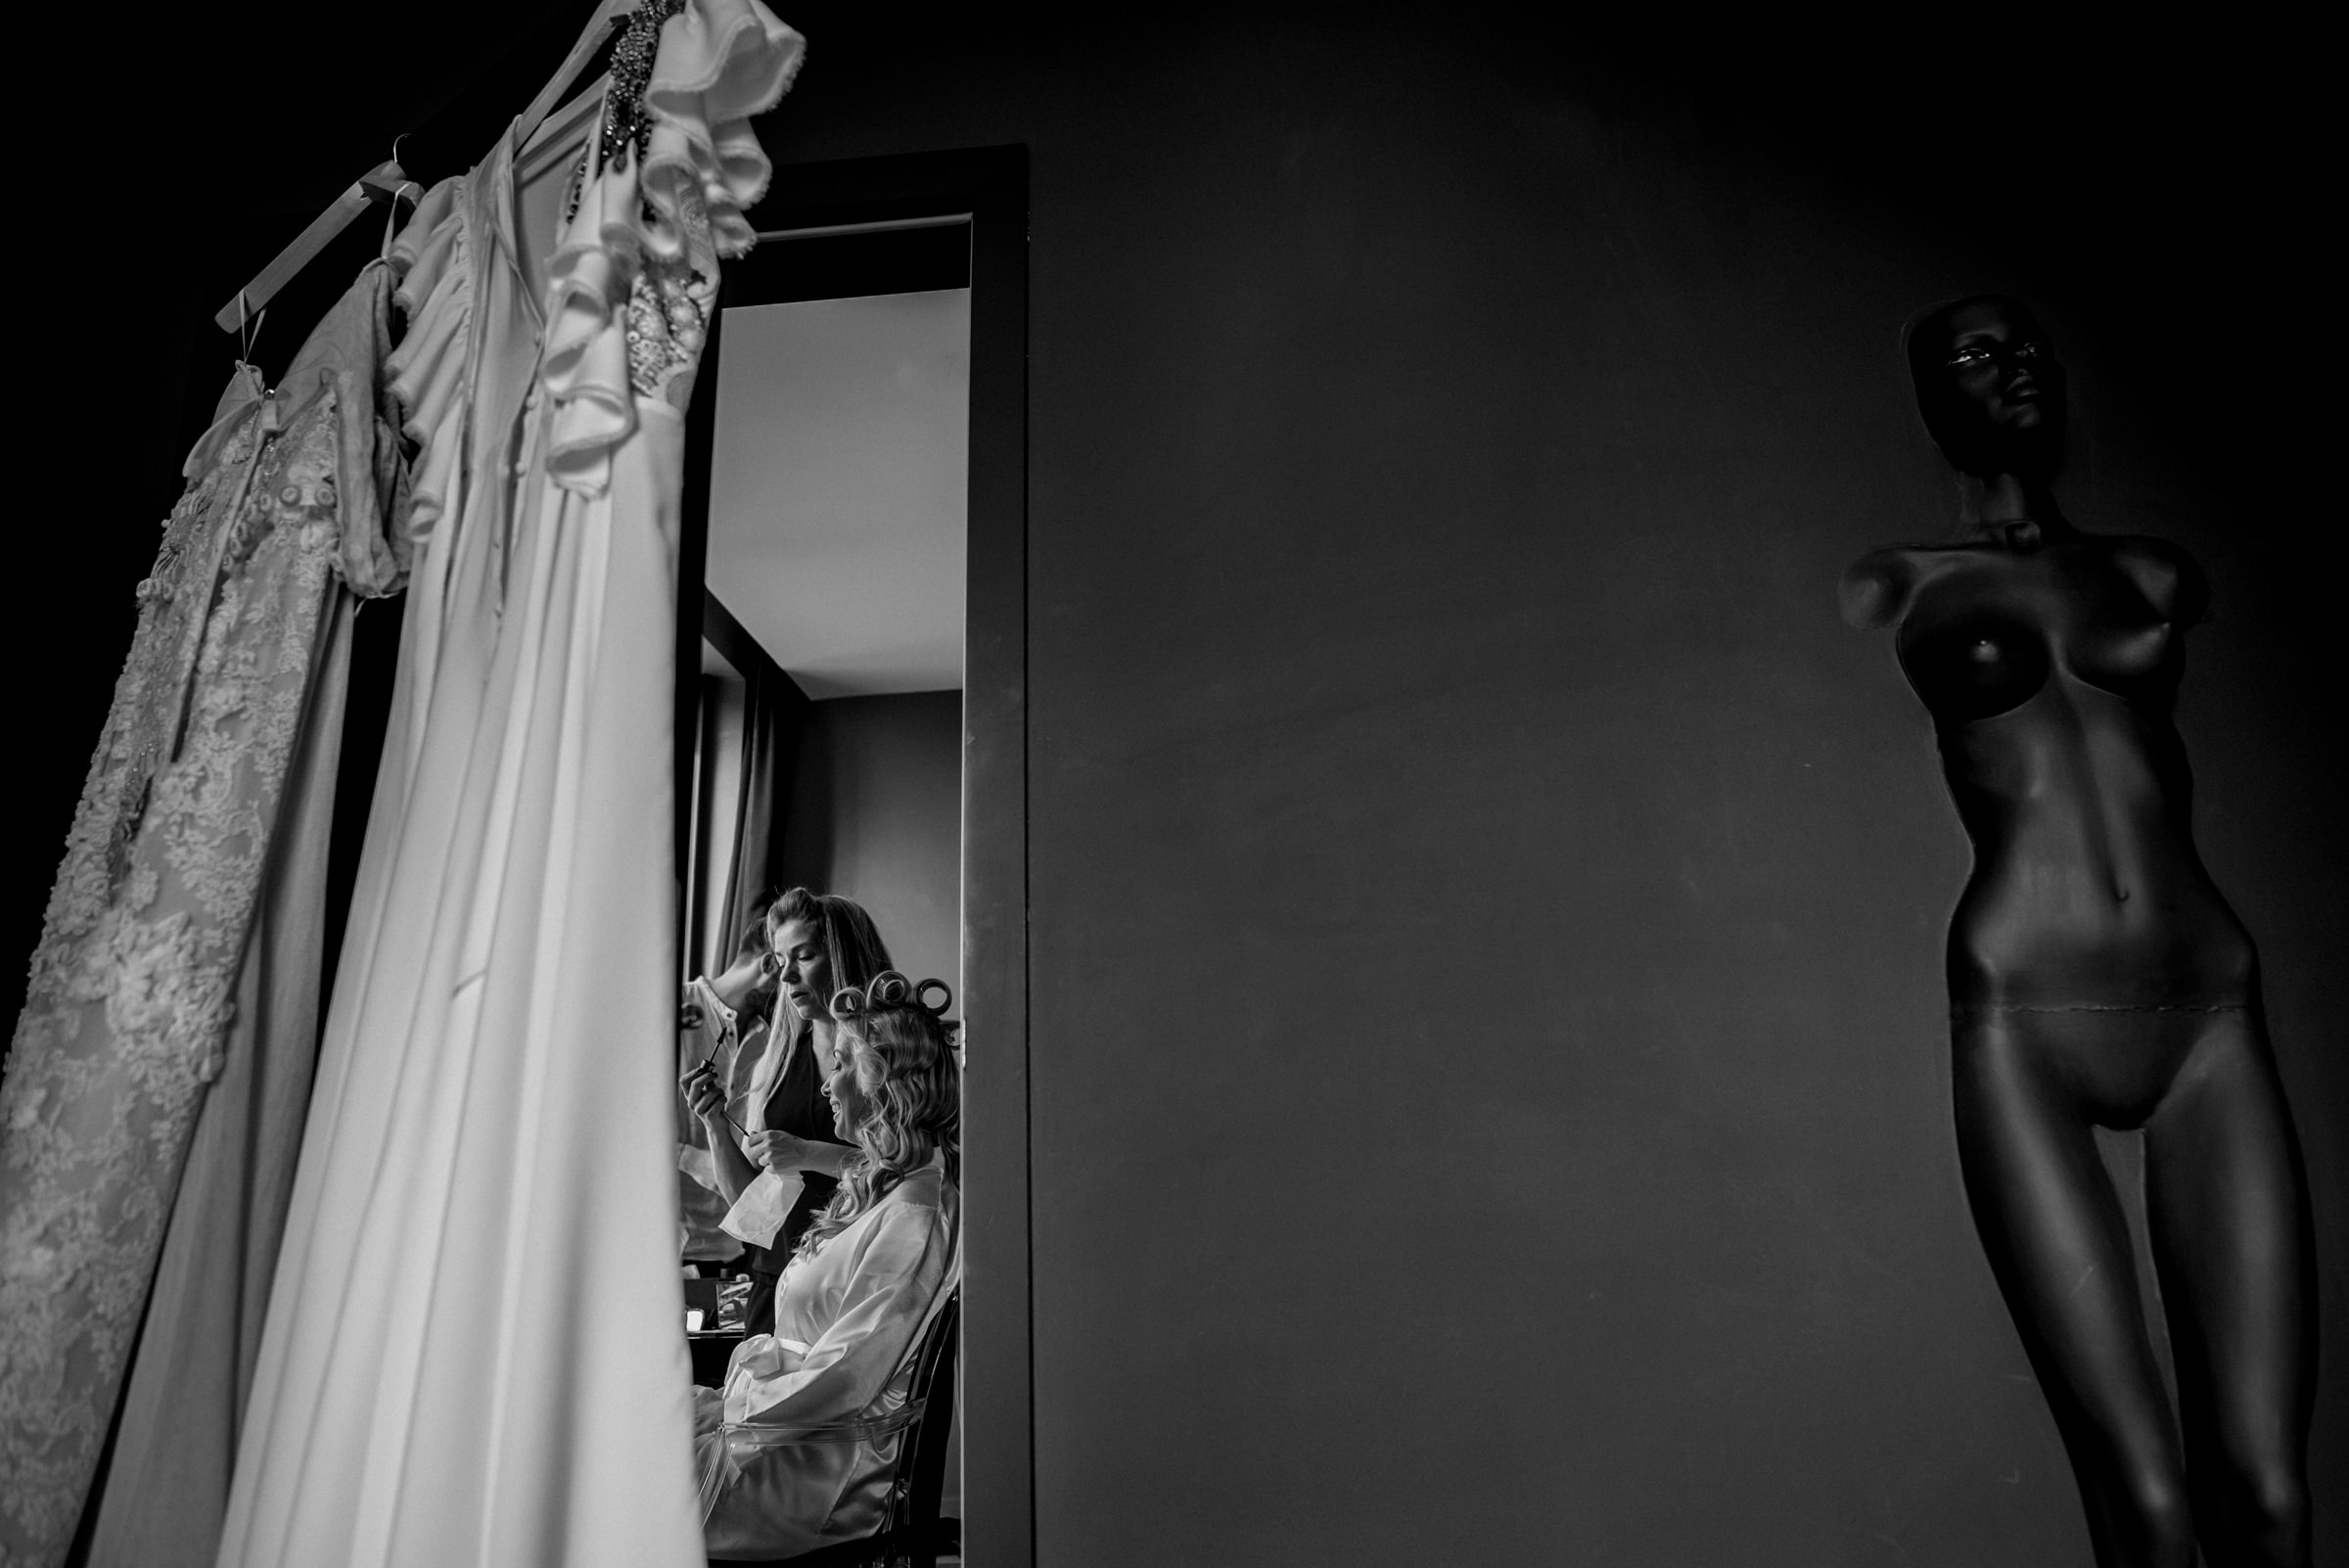 Bride getting ready with wedding dresses in foreground - photo by El Marco Rojo